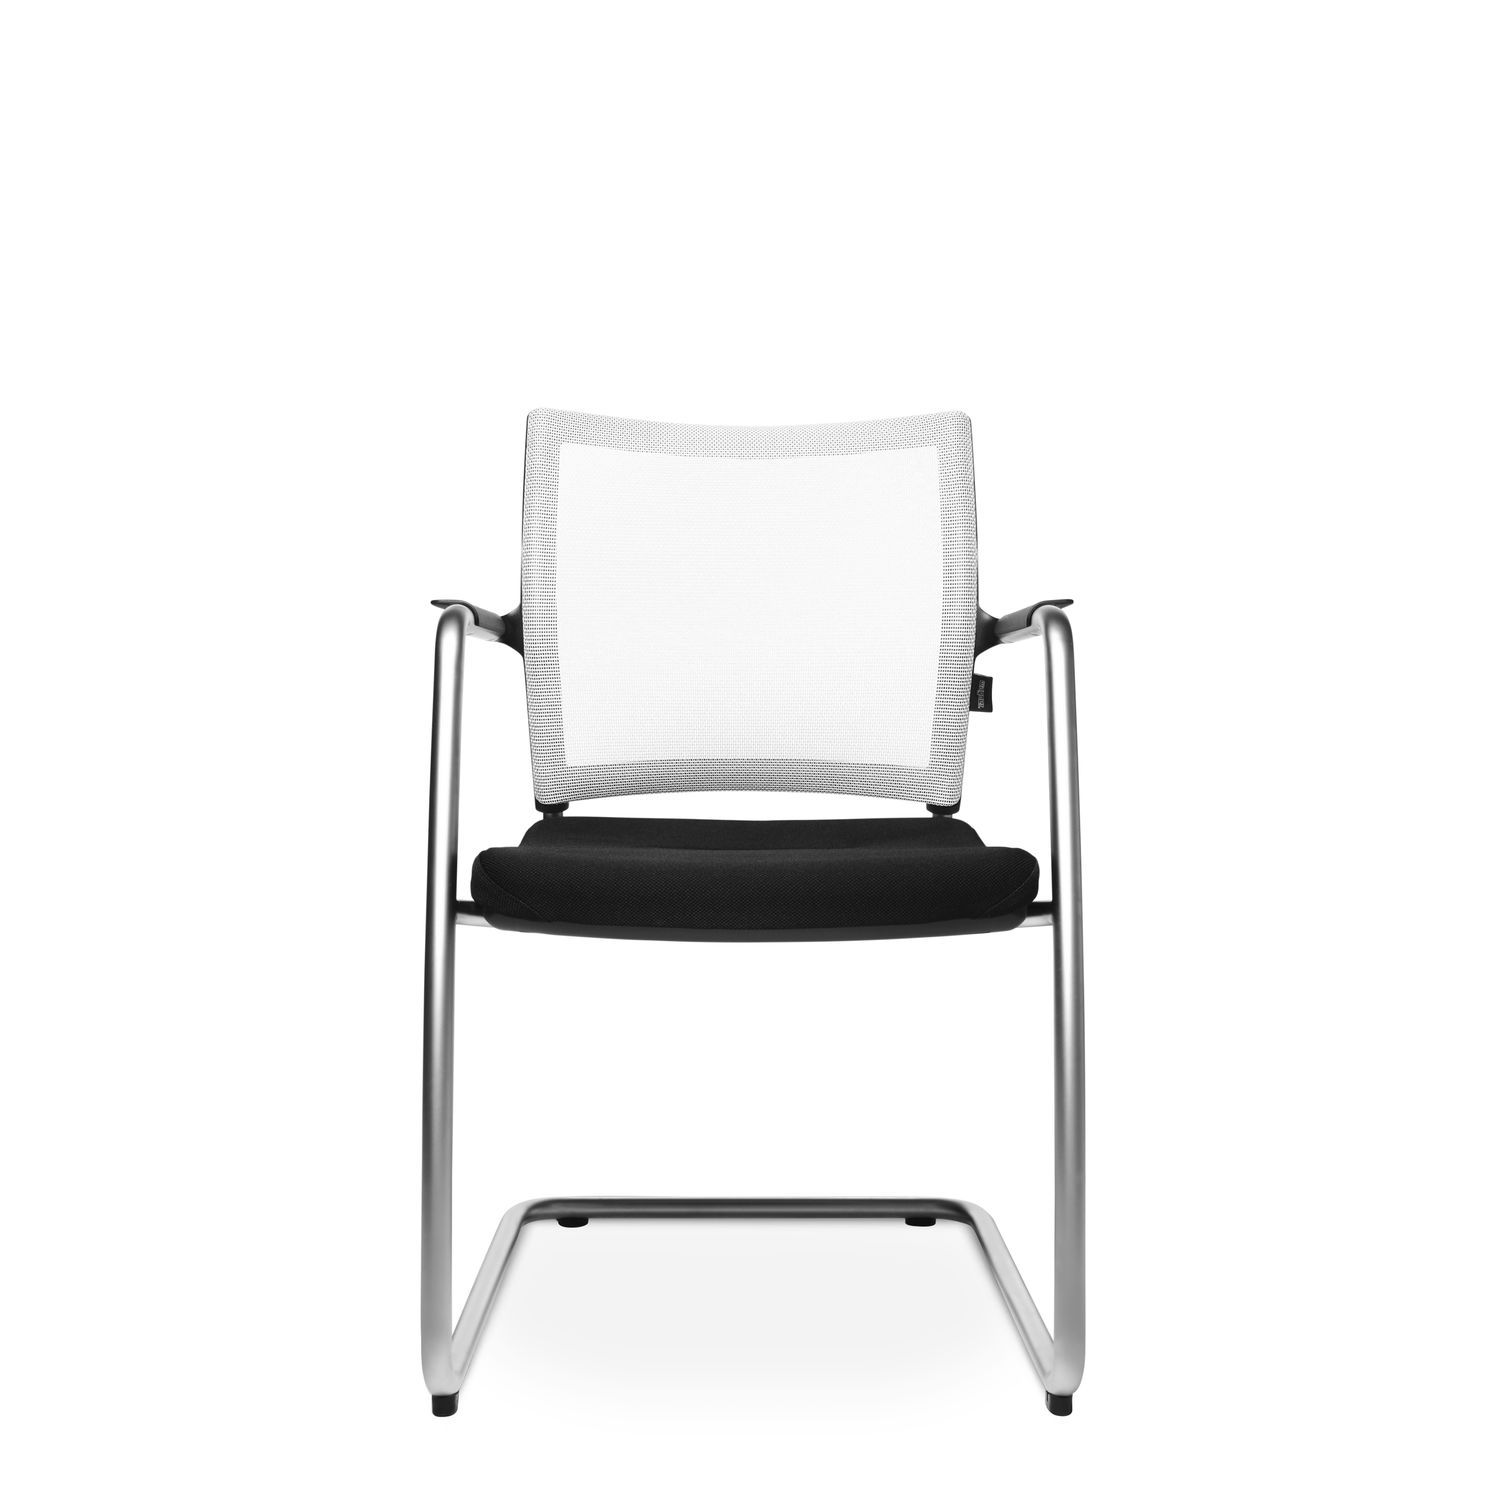 a7cdbb22b contemporary visitor chair   upholstered   with armrests   cantilever -  TITAN 10 VISIT